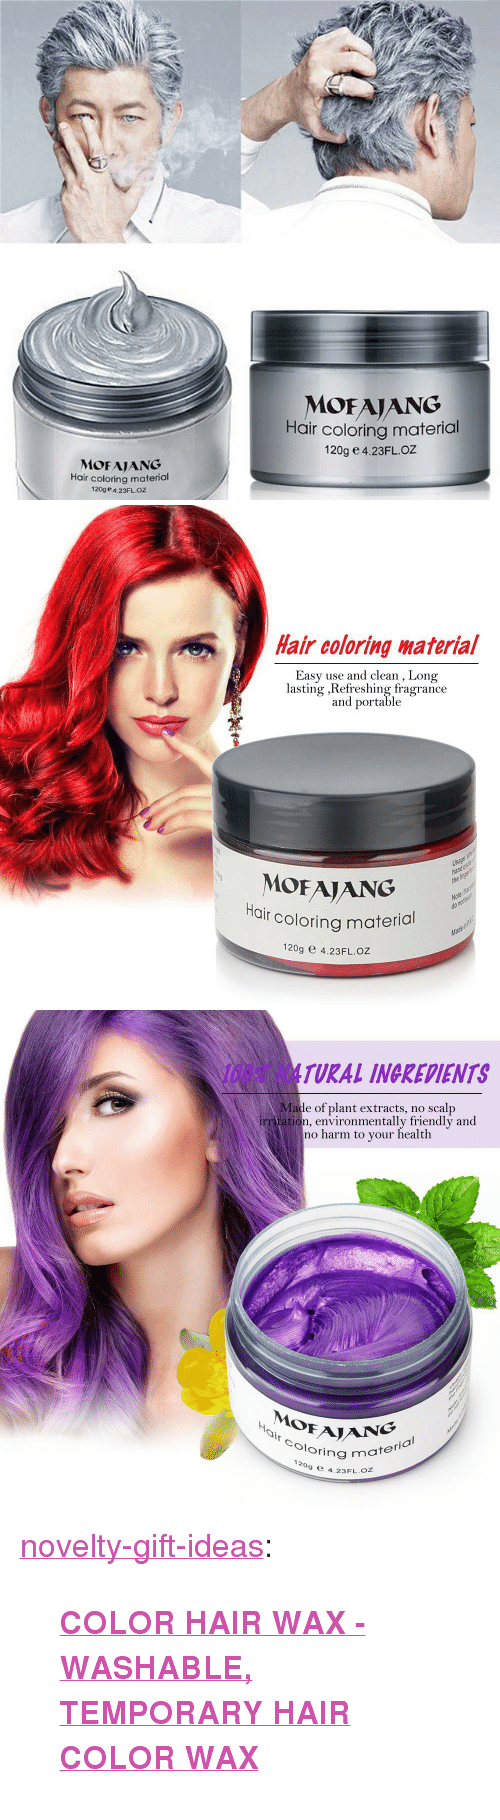 "hair color: MOFAIANG  Hair coloring material  120g e 4.23FLOZ  MOFAJANG  Hair coloring material  120ge 4.23FLOZ   Hair coloring啭aterial  Easy use and clean , Long  lasting ,Refreshing fragrance  and portable  Usage  ha  the  MOFAJANG  r coloring material  Ha  Note  do  Ma  120g e 4.23FL.OZ   100% NATURAL INGREDIENTS  Made of plant extracts, no scalp  irr tation, environmentally friendly and  no harm to your health  0  Oloring m  ½  NG  ring material  ,  9 e 4.23FL.oZ <p><a href=""https://novelty-gift-ideas.tumblr.com/post/170243494438/color-hair-wax-washable-temporary-hair-color"" class=""tumblr_blog"">novelty-gift-ideas</a>:</p><blockquote><p><b><a href=""https://slangzteez.com/products/color-hair-wax"">COLOR HAIR WAX - WASHABLE, TEMPORARY HAIR COLOR WAX</a></b></p></blockquote>"